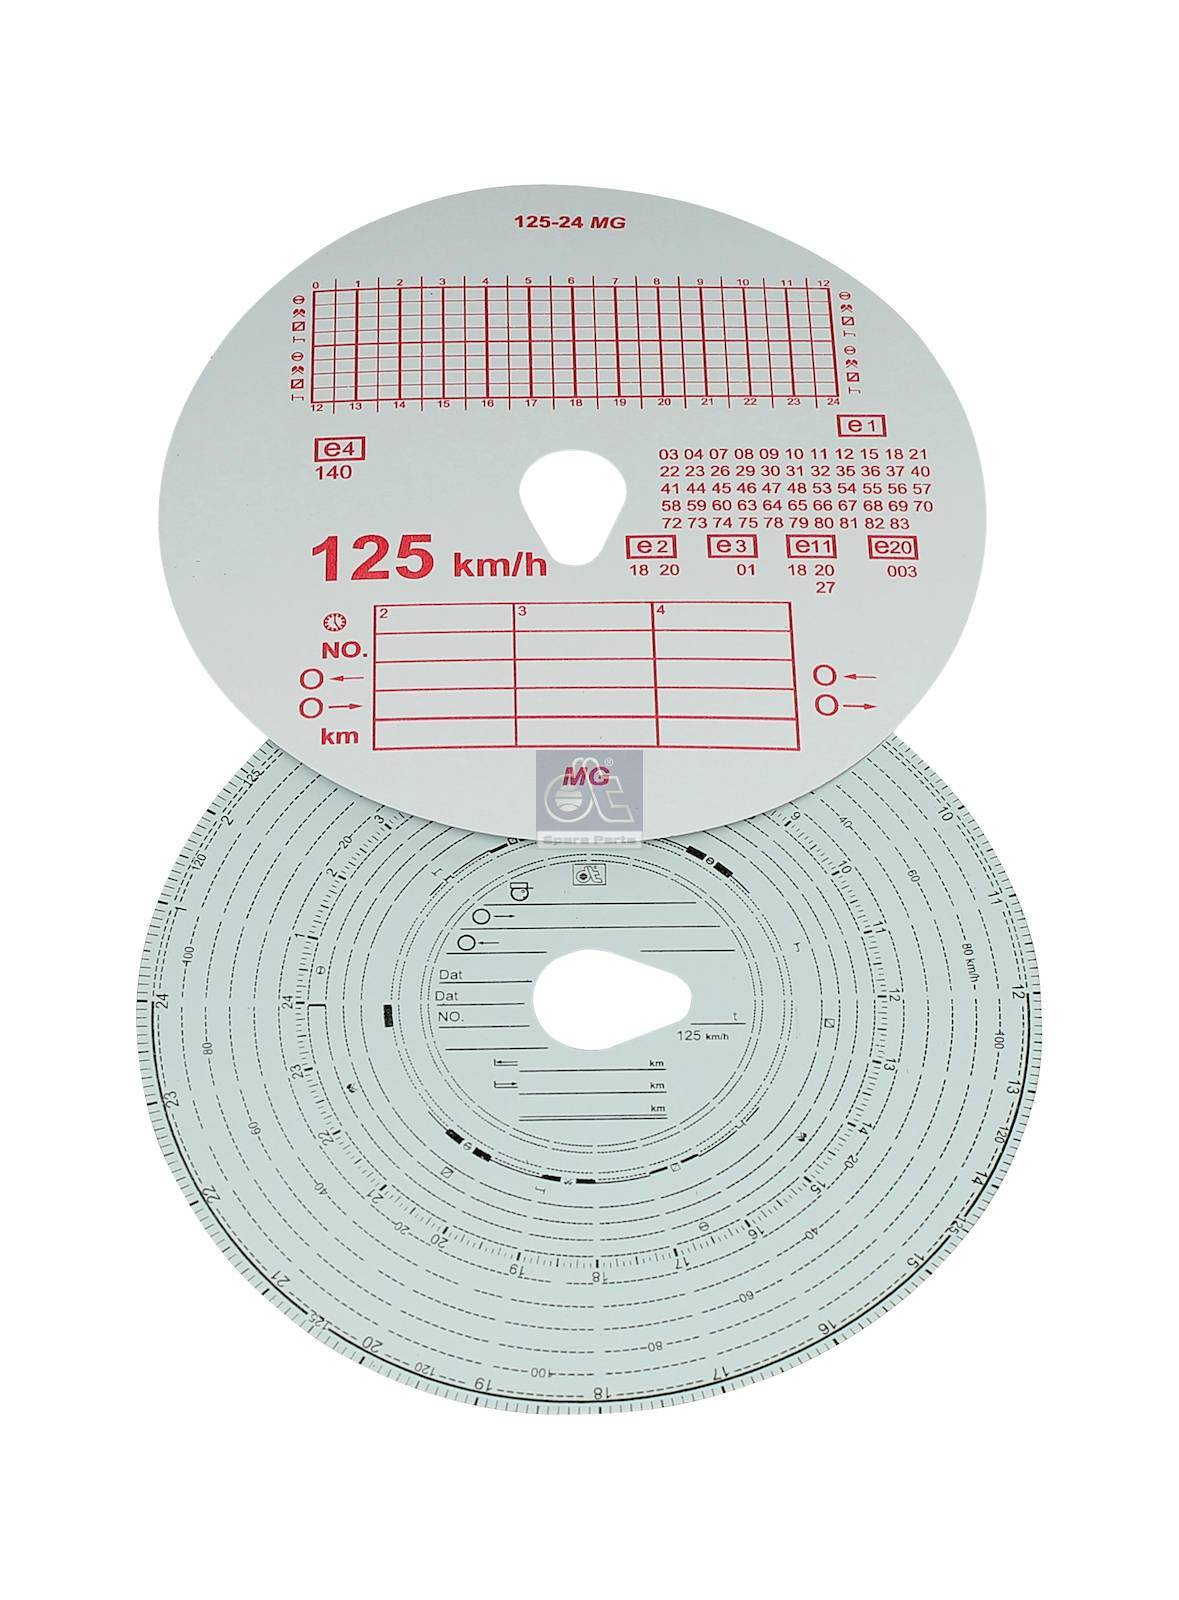 Tachograph disc set, 1 day, 125 km/h